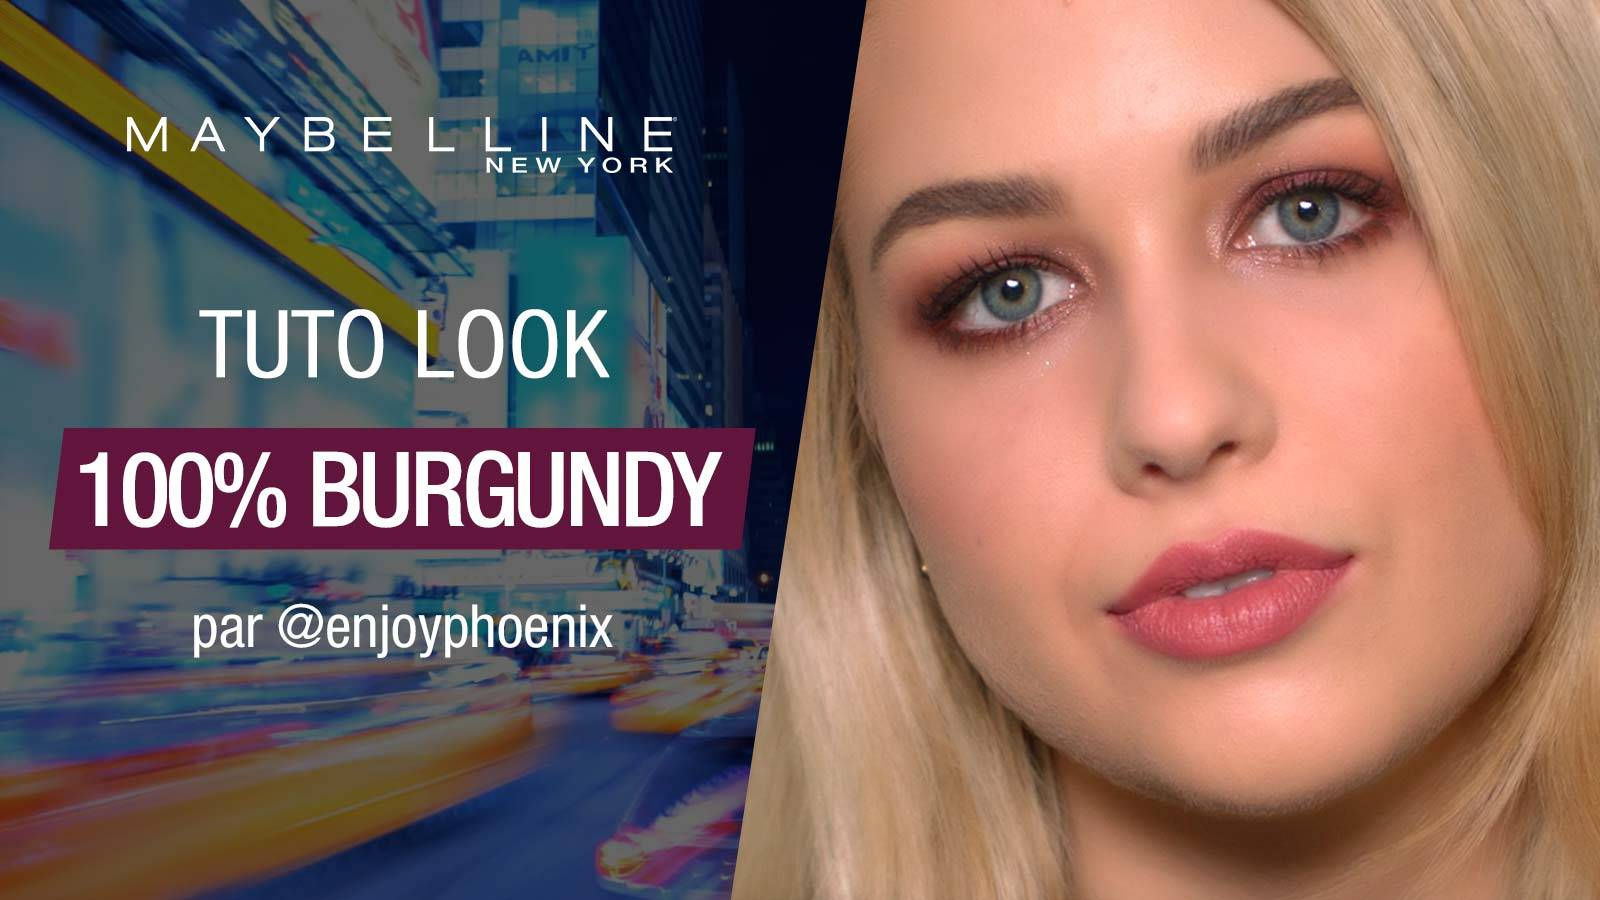 maybelline-tutoriel-look-burgundy-enjoyphoenix-video-16x9